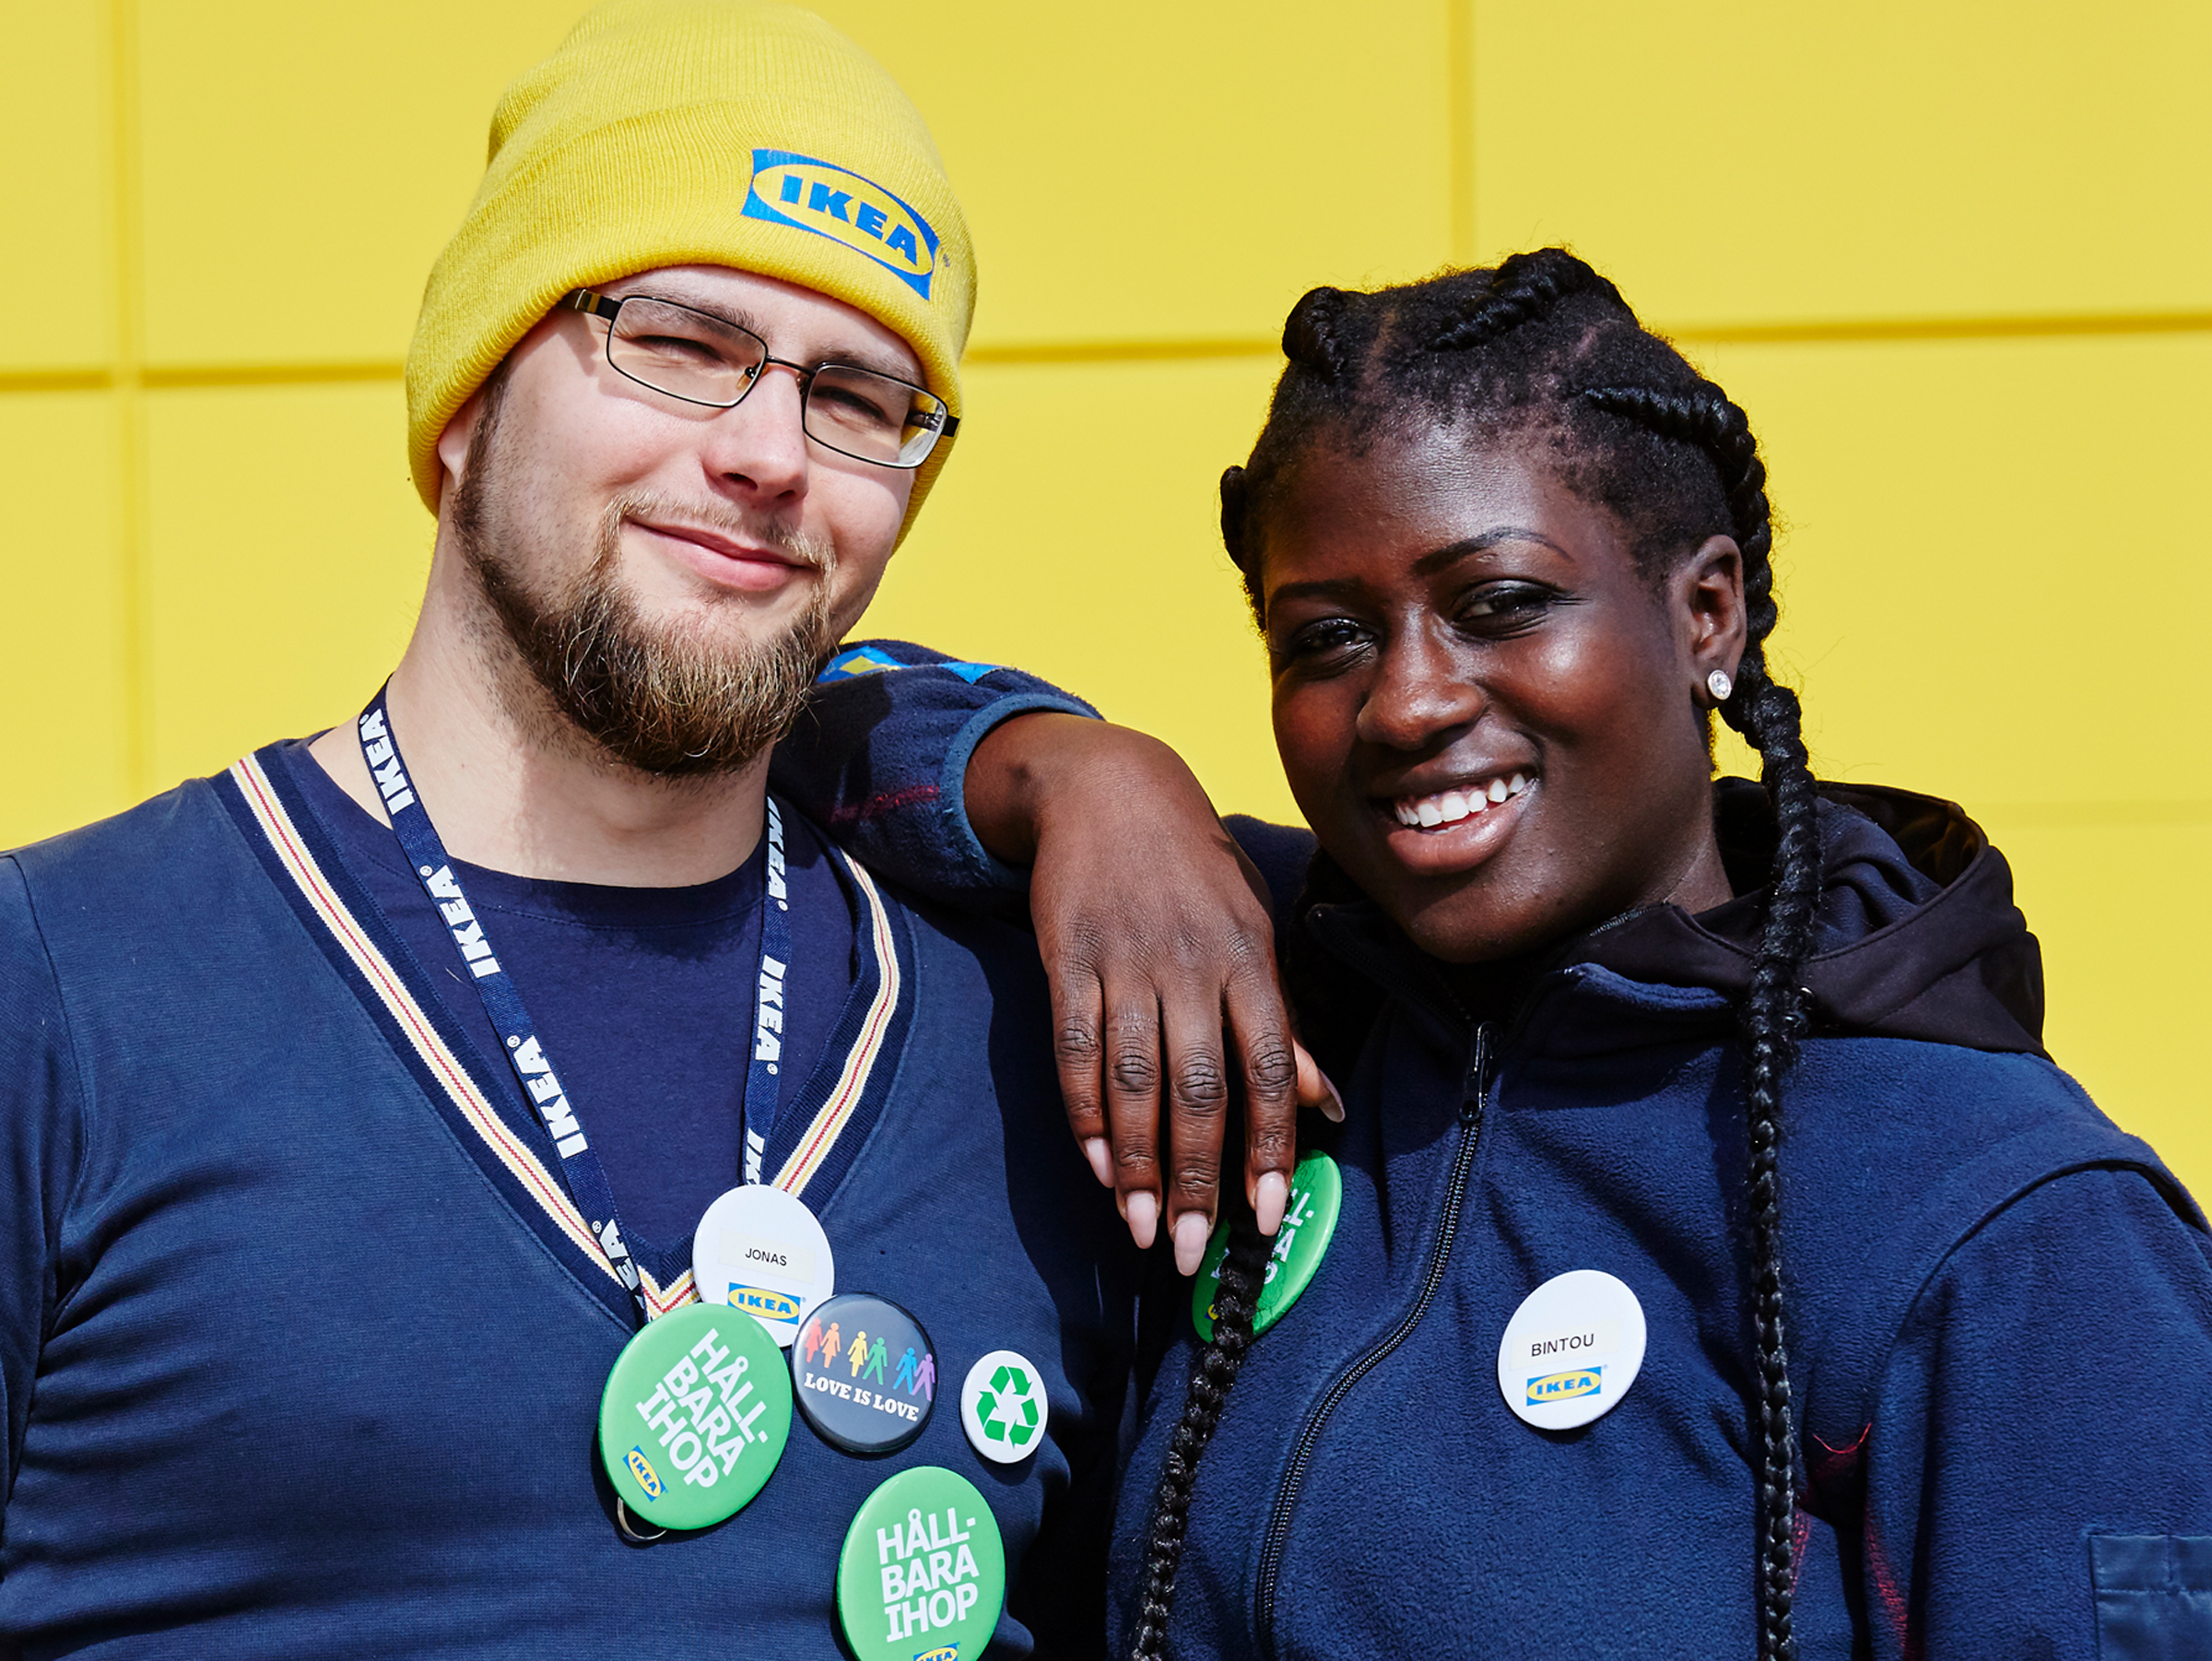 Two IKEA co-workers wearing navy uniforms are standing in front of a yellow wall. They are both smiling.